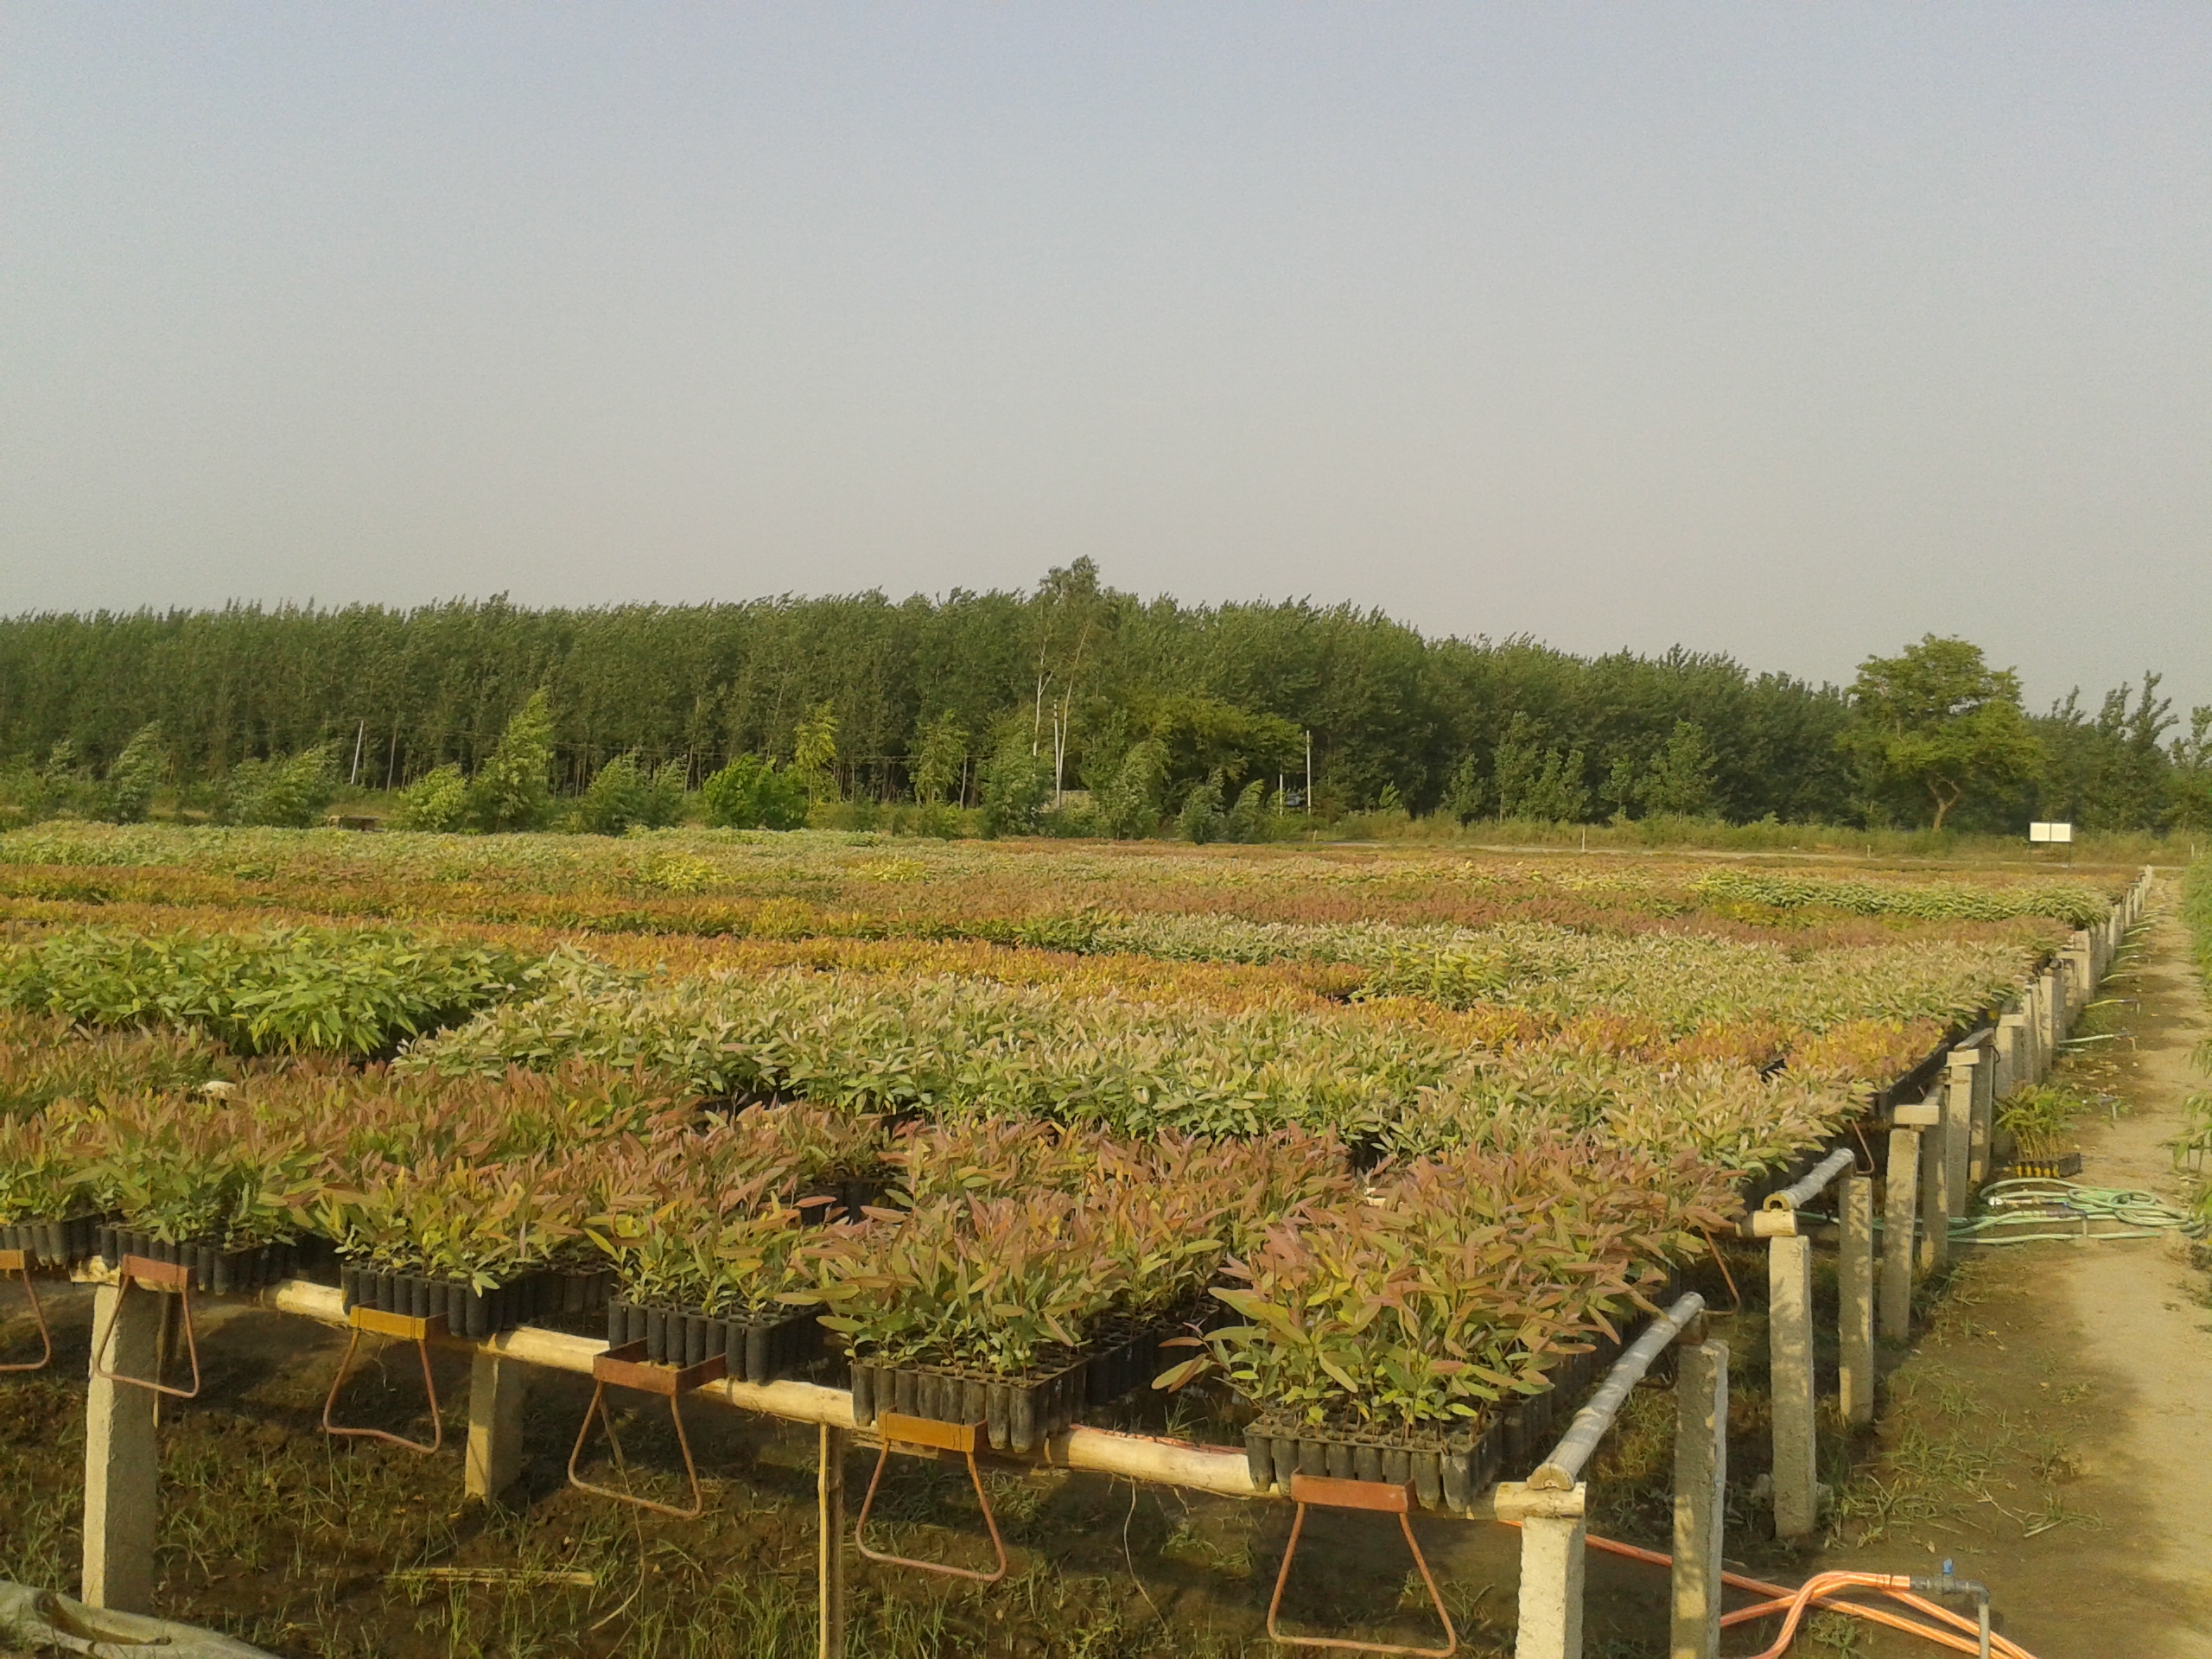 Green house Business for Sale in Uttar Pradesh